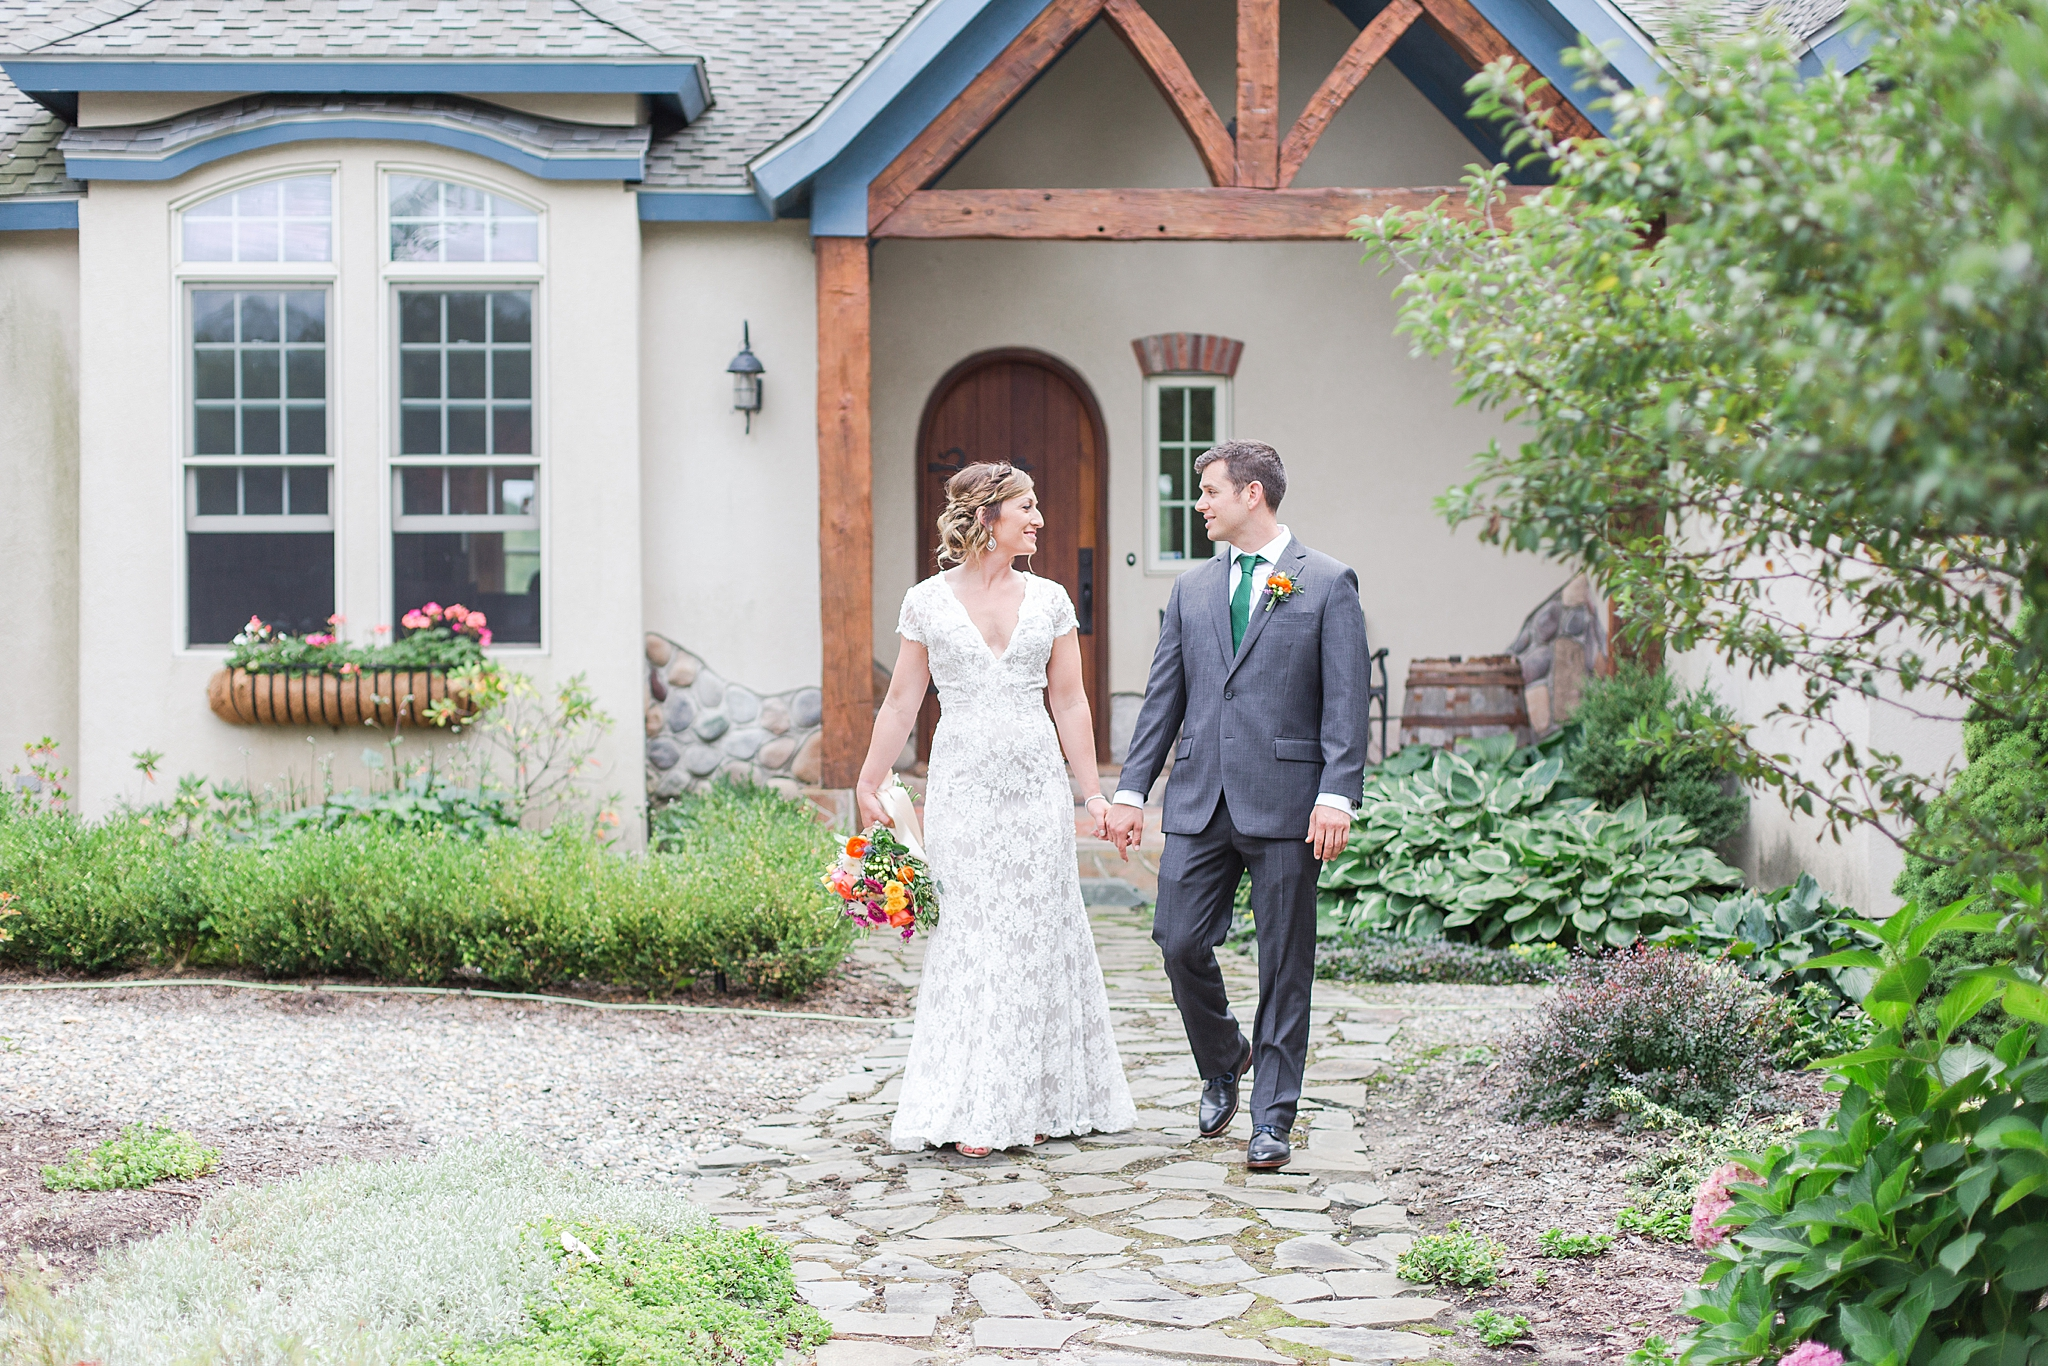 private-lakefront-estate-wedding-photography-in-ann-arbor-michigan-by-courtney-carolyn-photography_0032.jpg